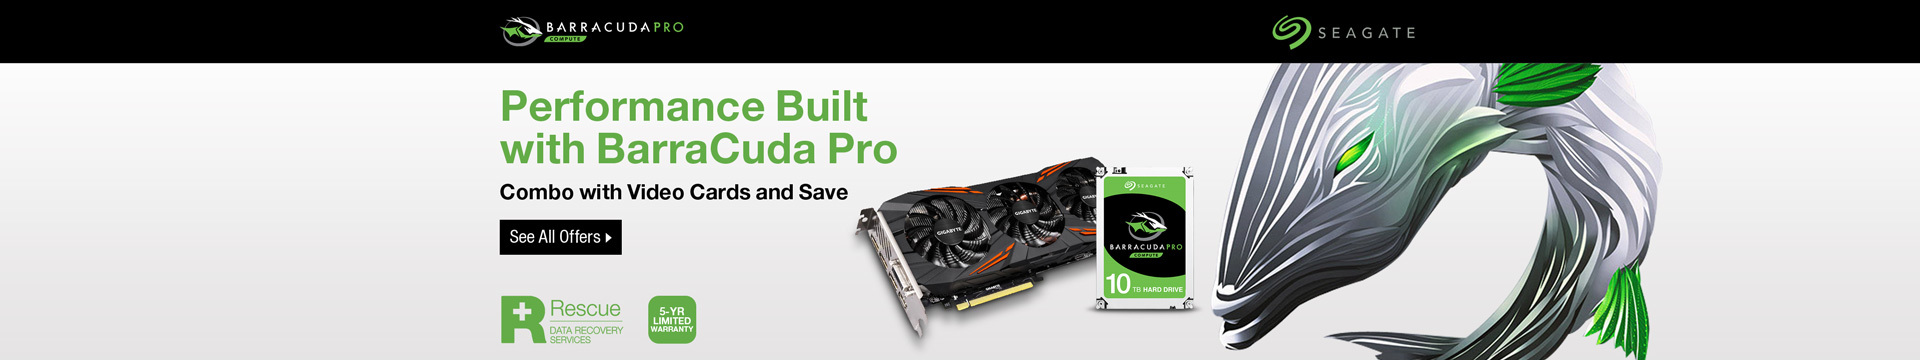 Performance Built with BarraCuda Pro